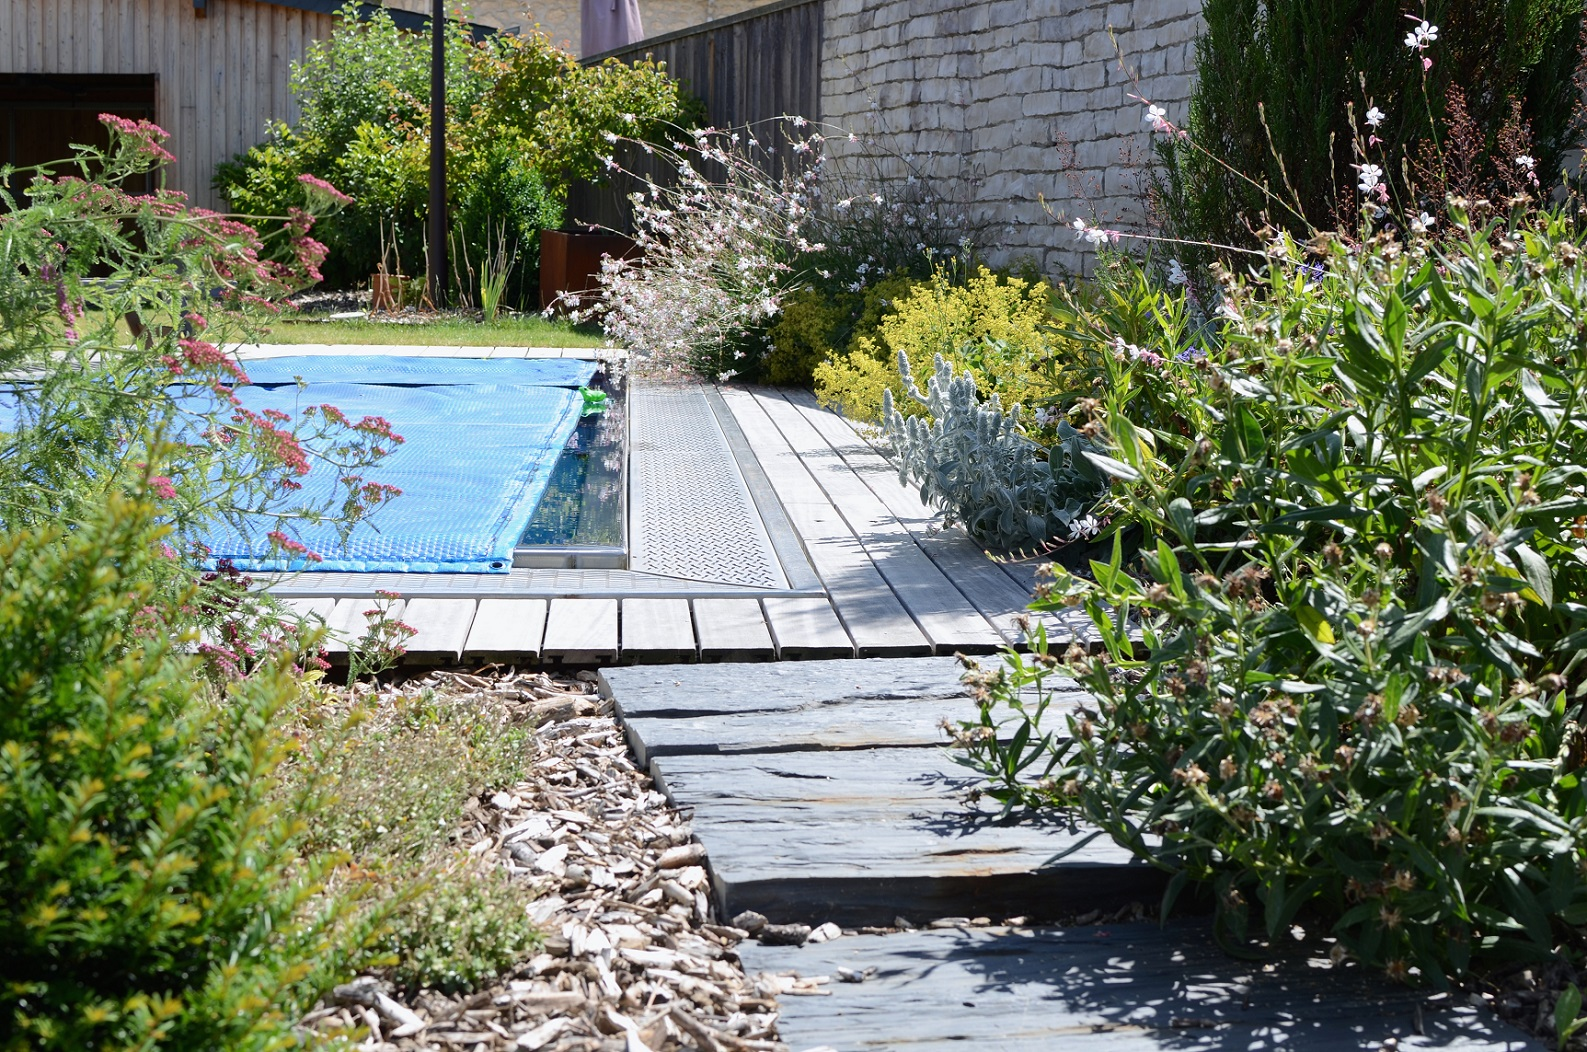 Am nagement de piscine fl jardin paysagiste cr ateur for Paysagiste piscine